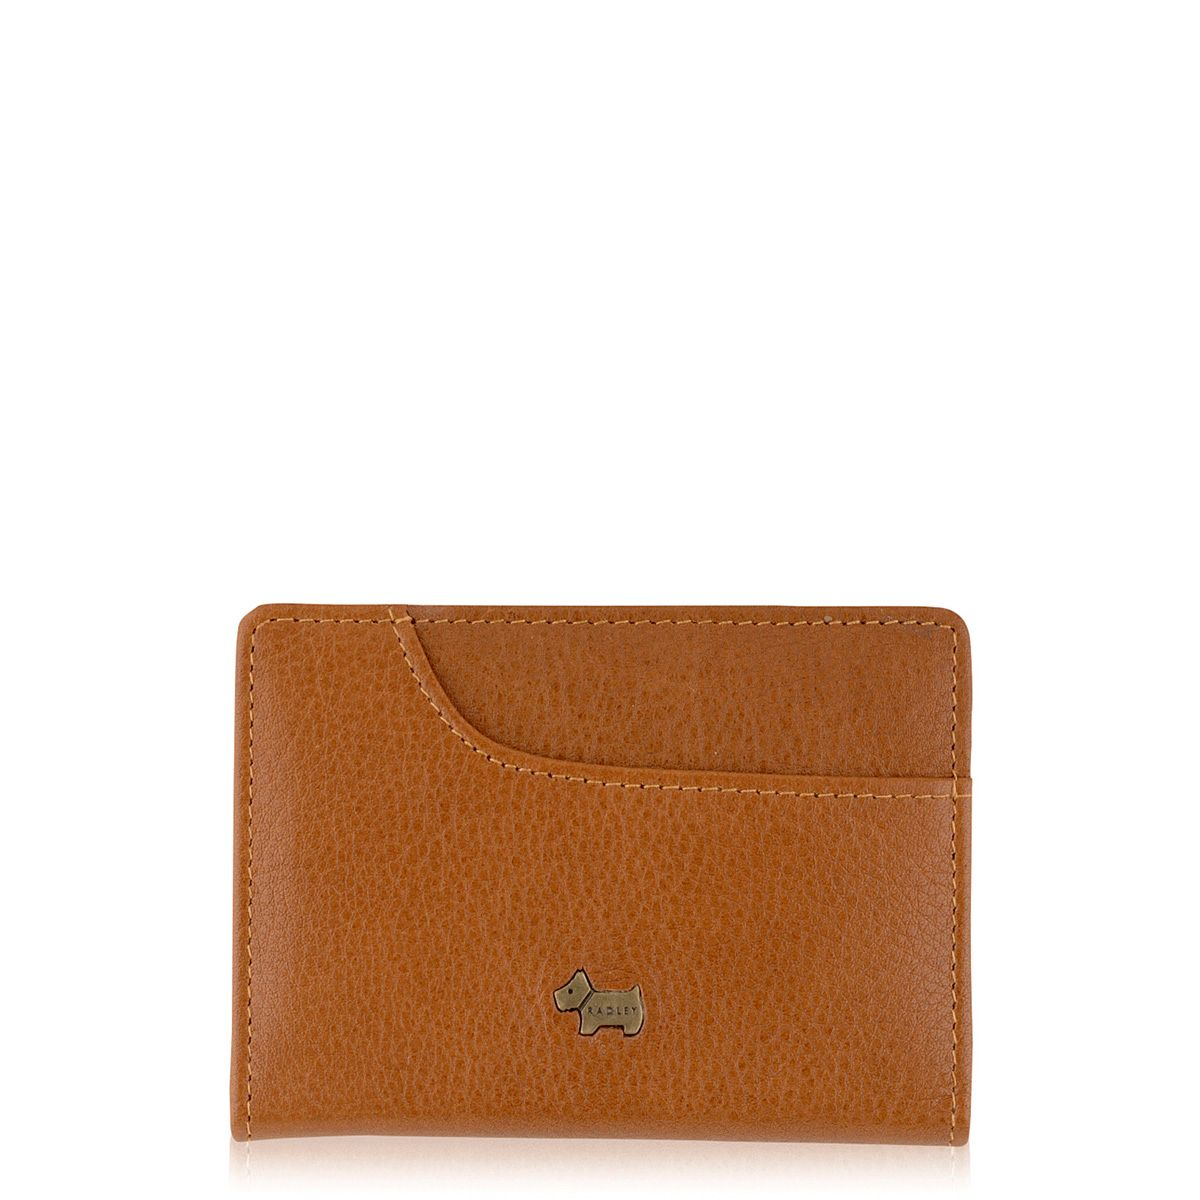 Pocket bag small brown cardholder